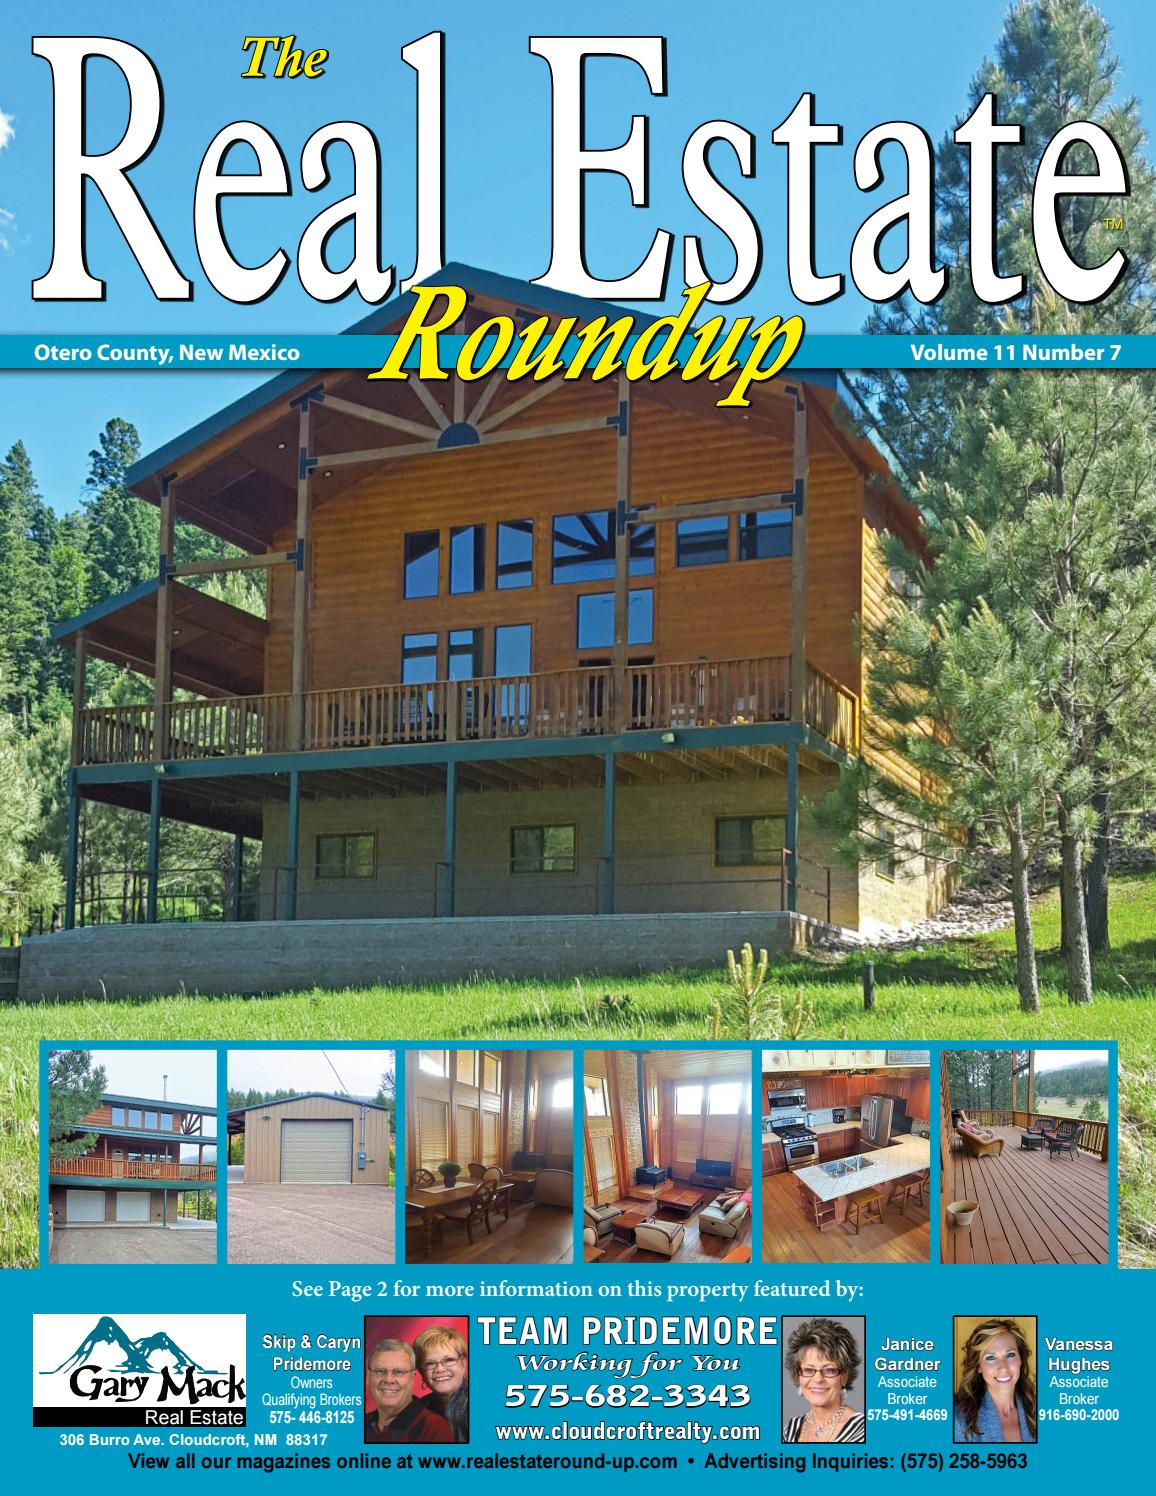 New mexico otero county cloudcroft - Alamogordo Real Estate With Homes And Land Listings For Sale Cloudcroft Tularosa High Rolls 11 7 By Helpful Publications Issuu